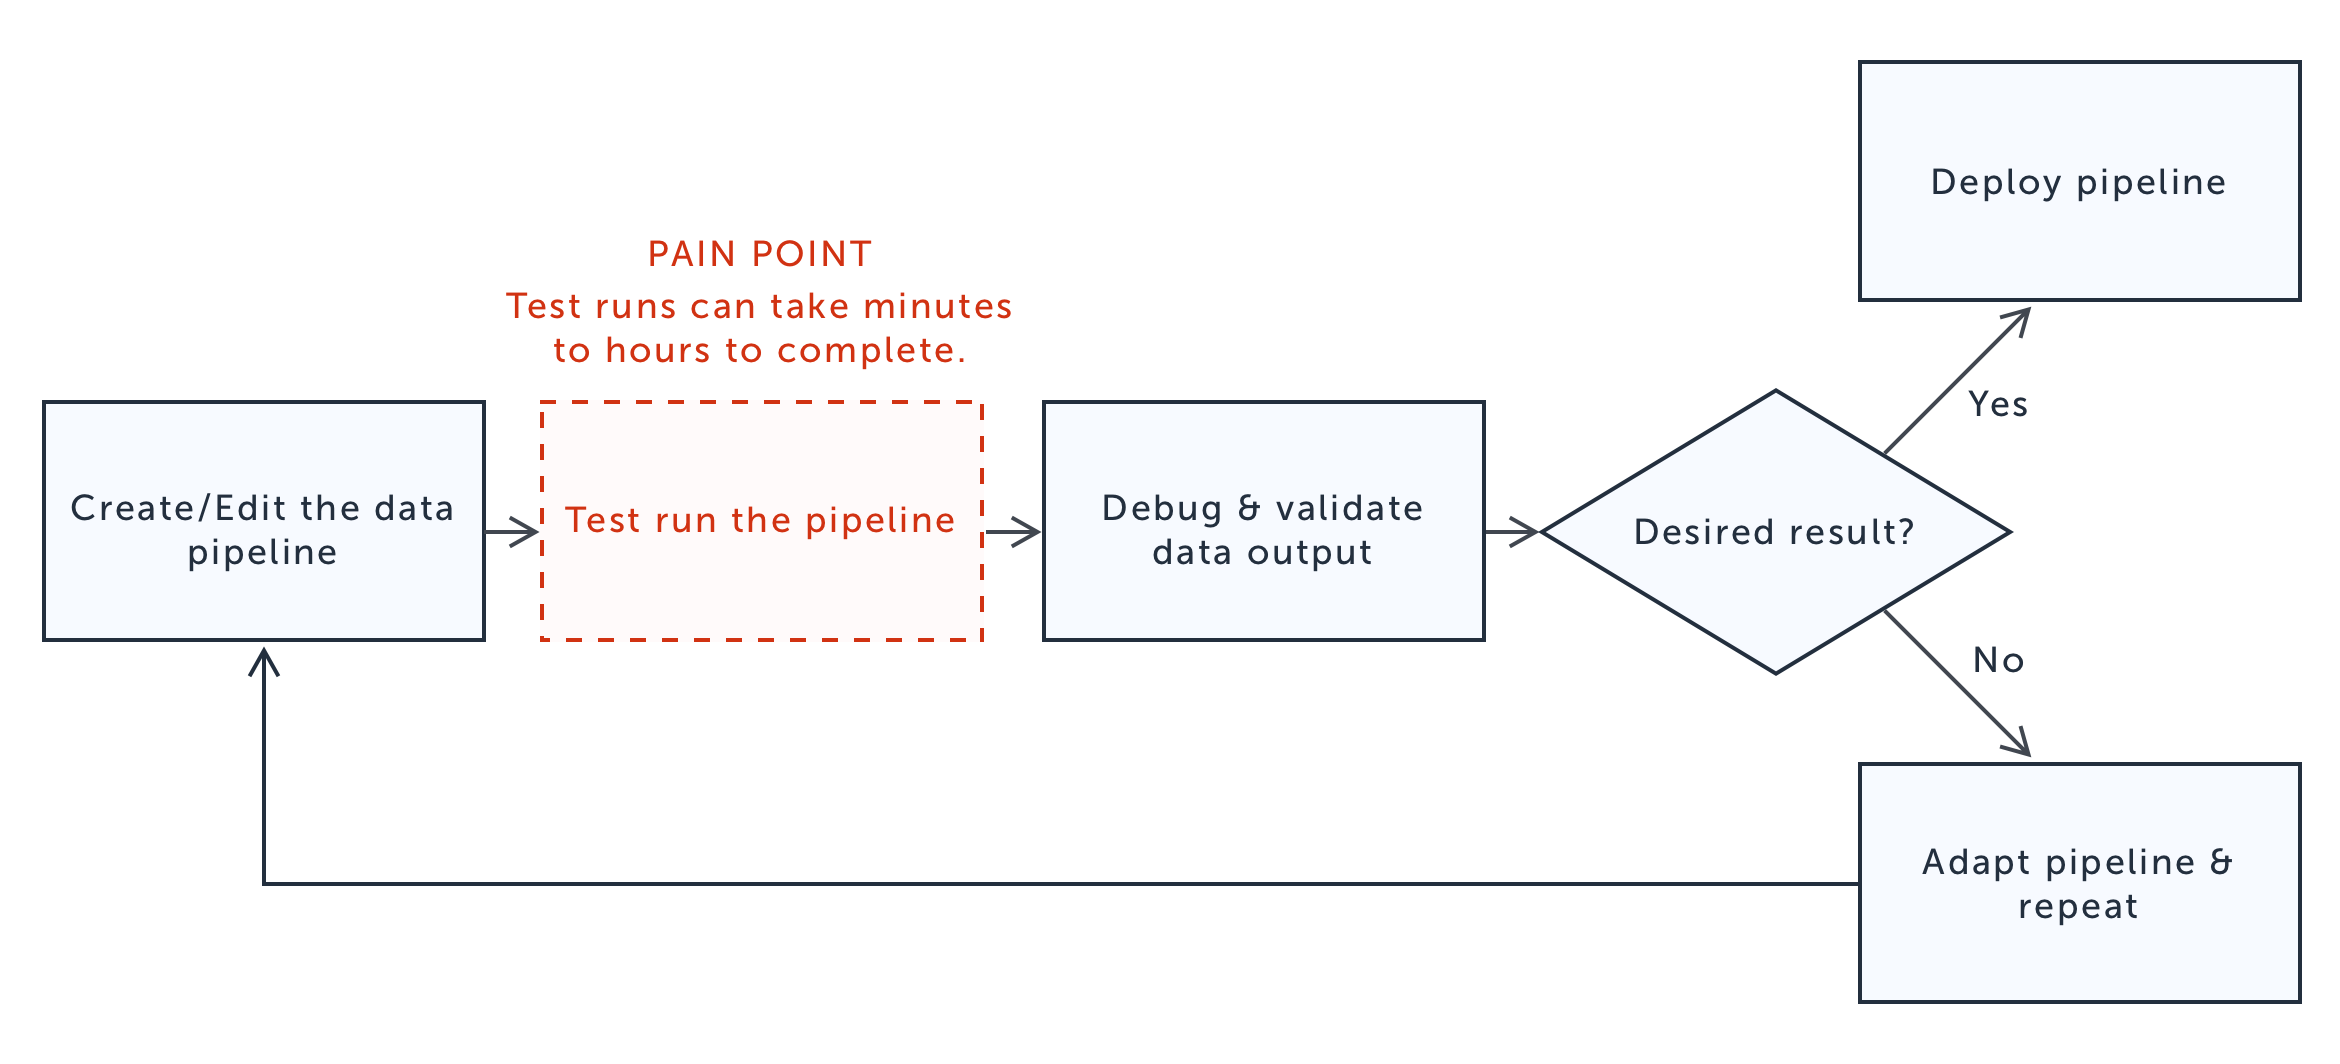 pain-point-diagram